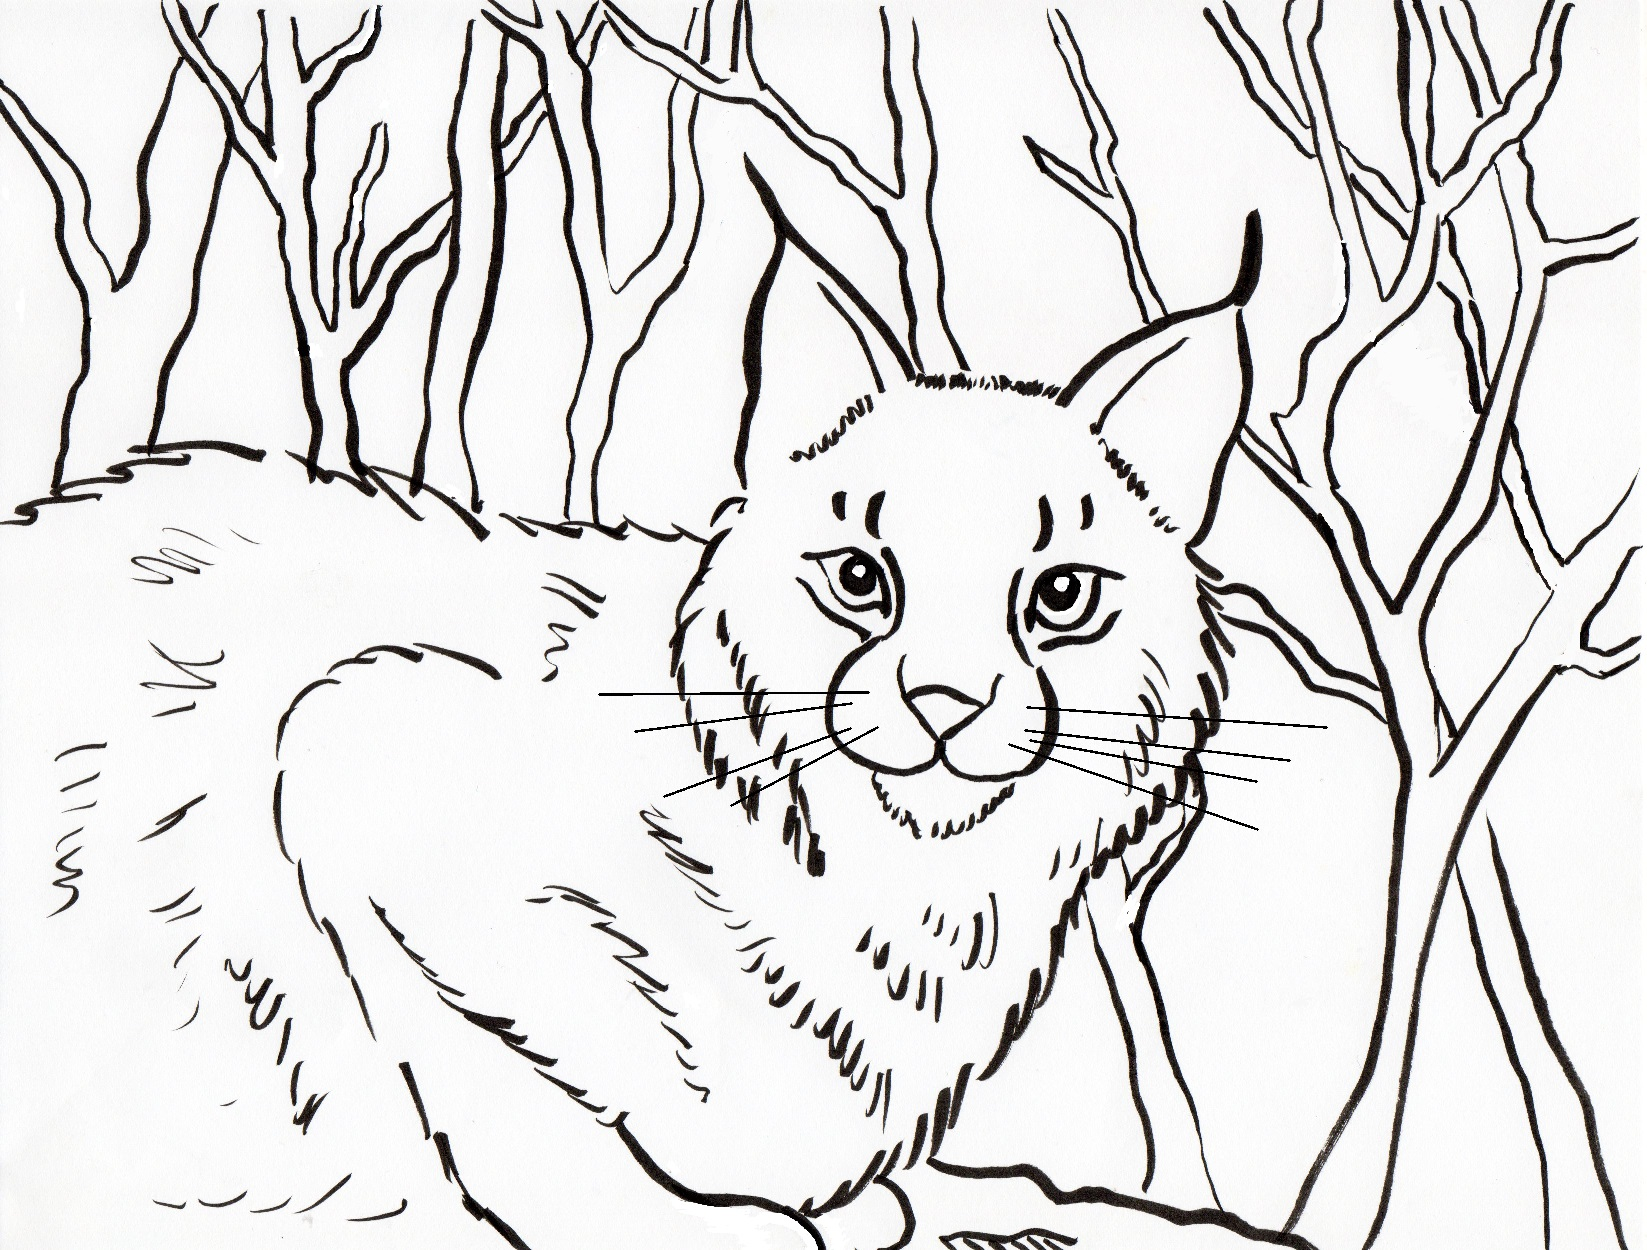 bobcat coloring pages Bobcat Coloring Page   Samantha Bell bobcat coloring pages